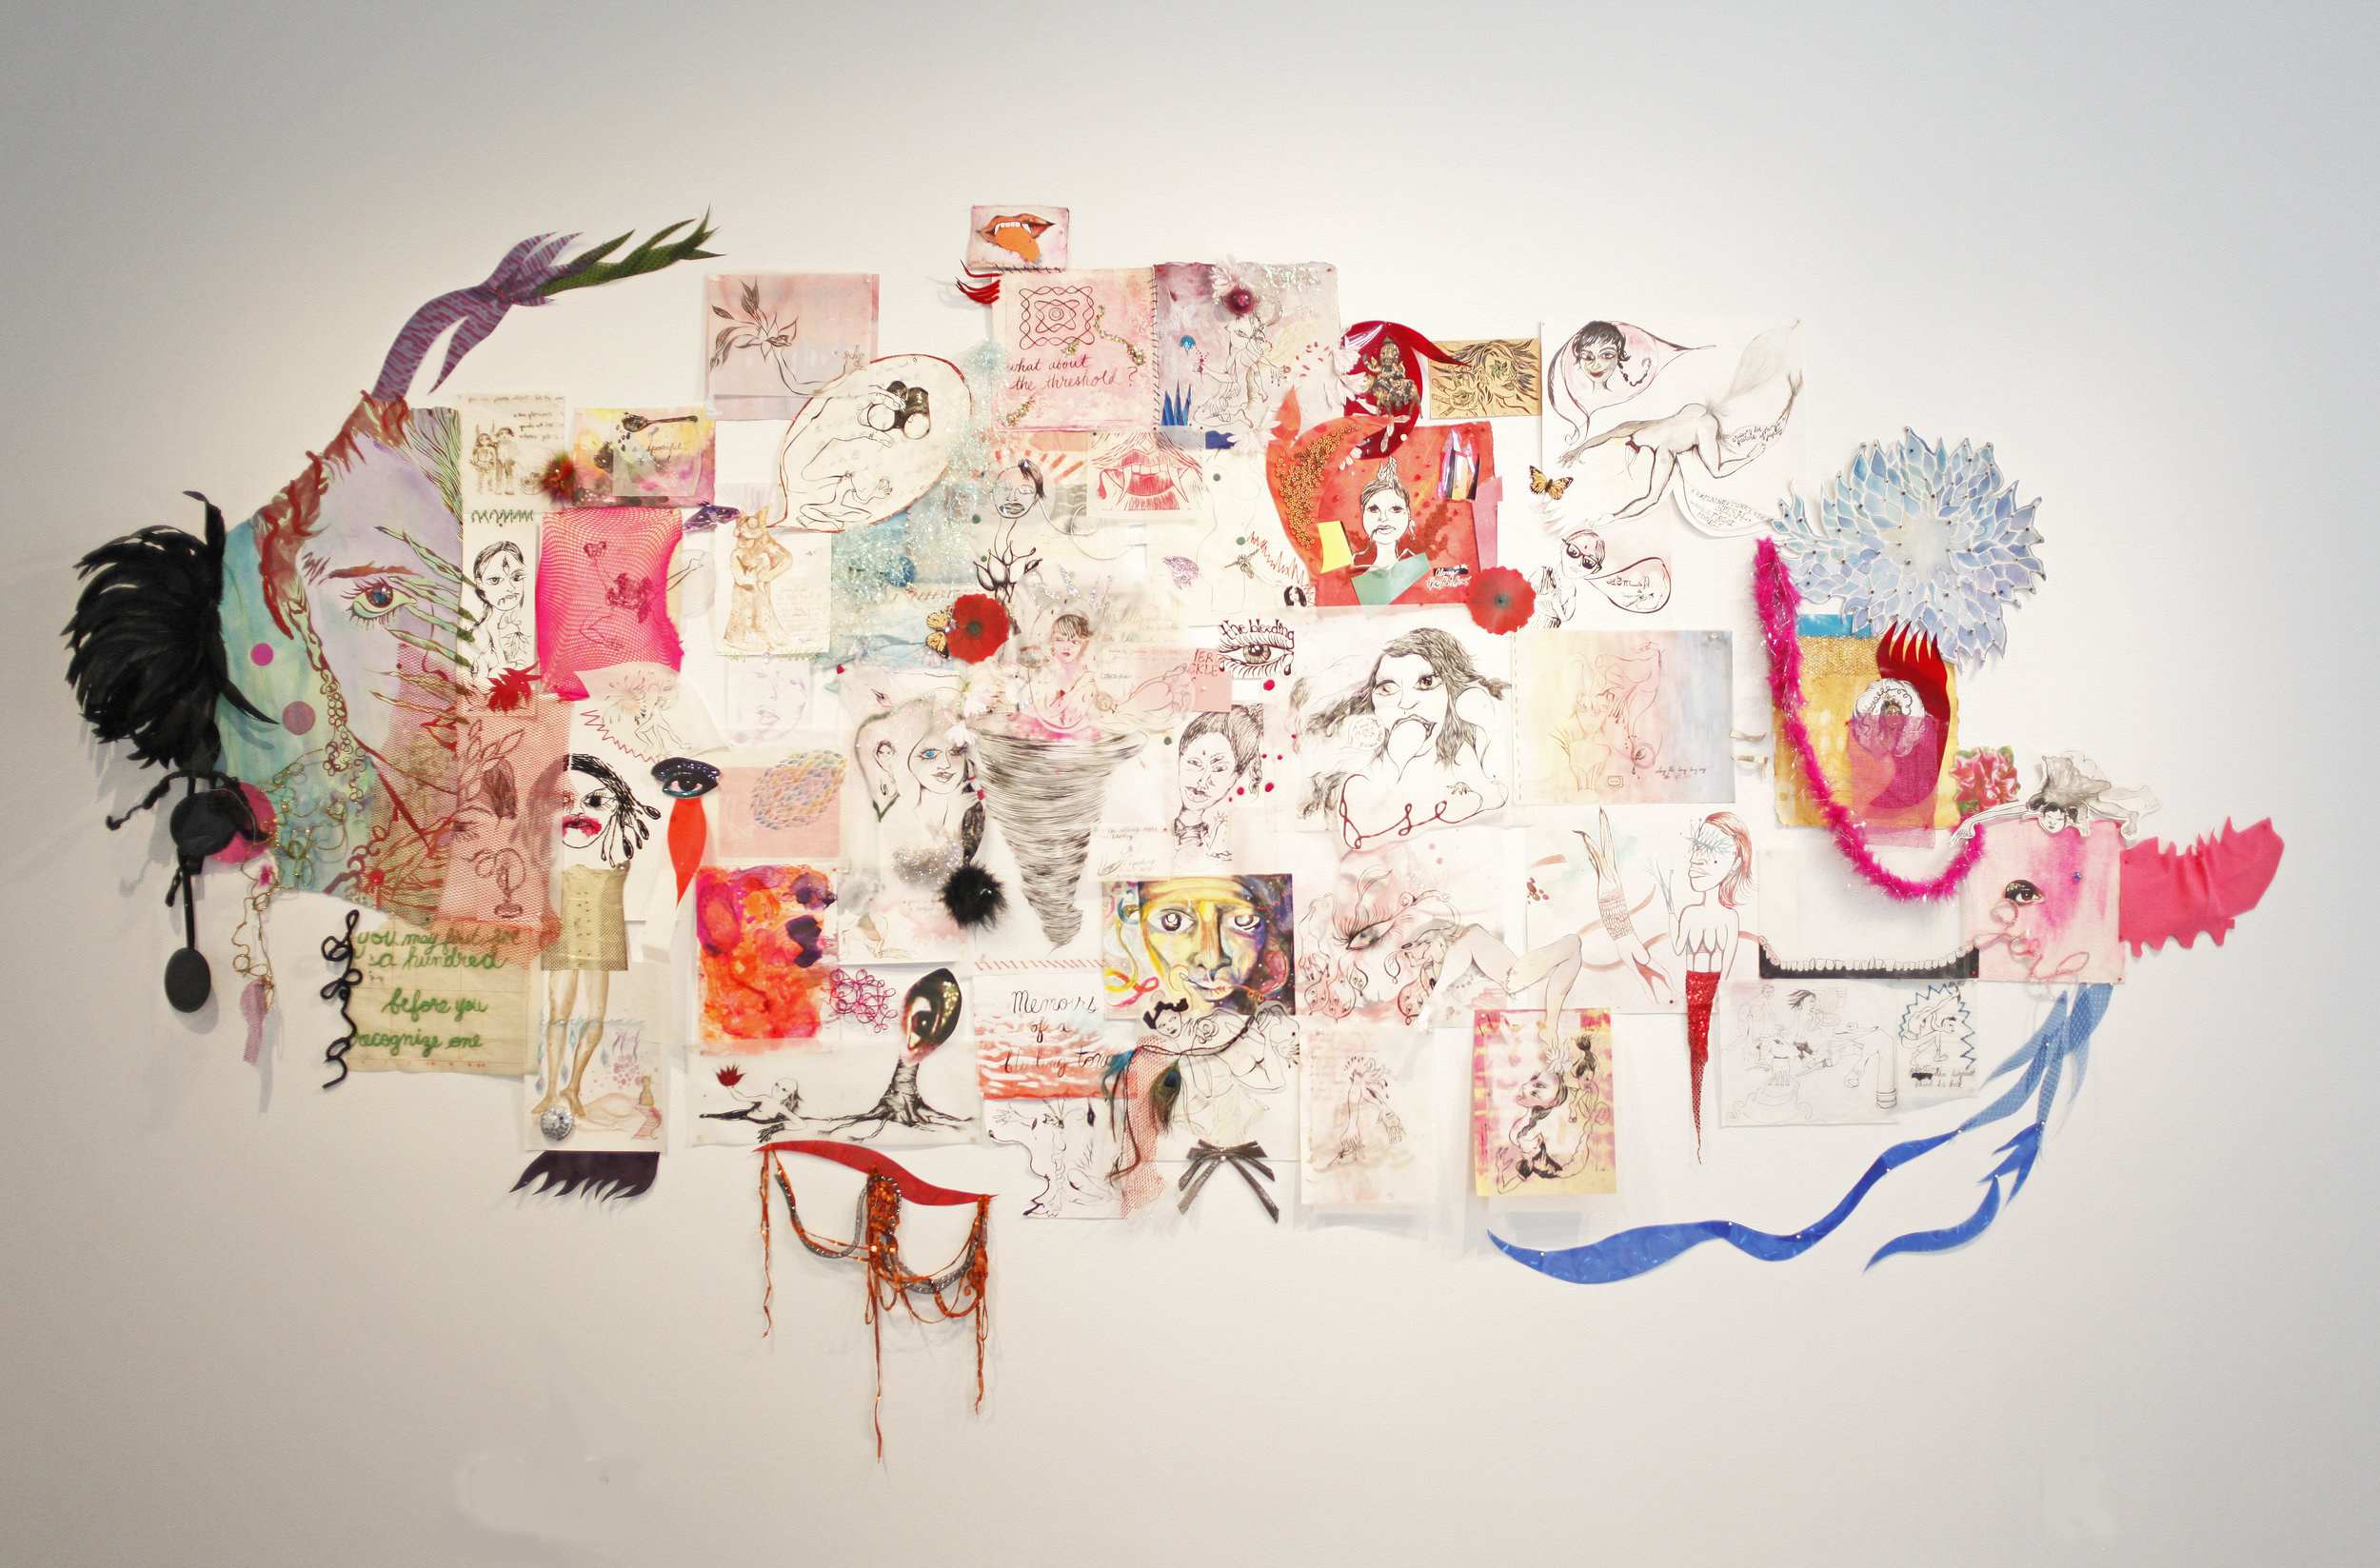 Threads of Memory: One Thousand Ways of Saying Goodbye,  installation view, Gallery Wendi Norris, San Francisco, CA, October 21 – November 15, 2017